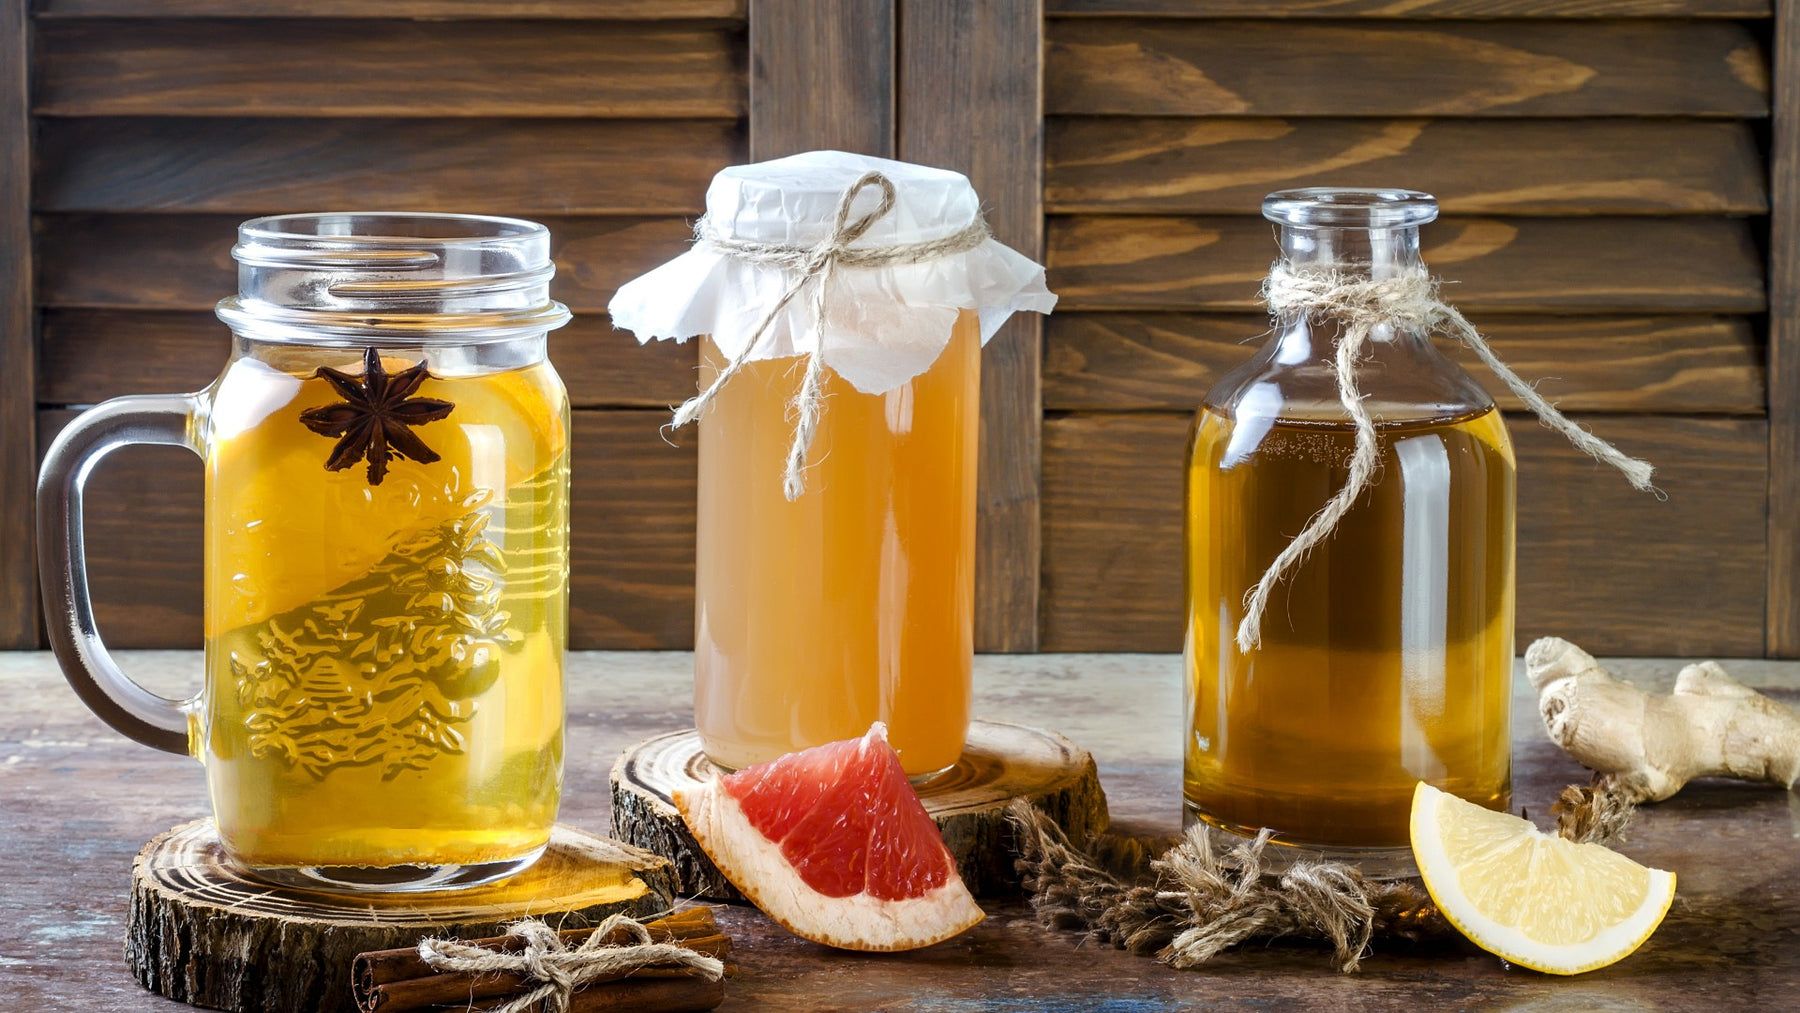 Kombucha - What Is It and Should You Drink It?